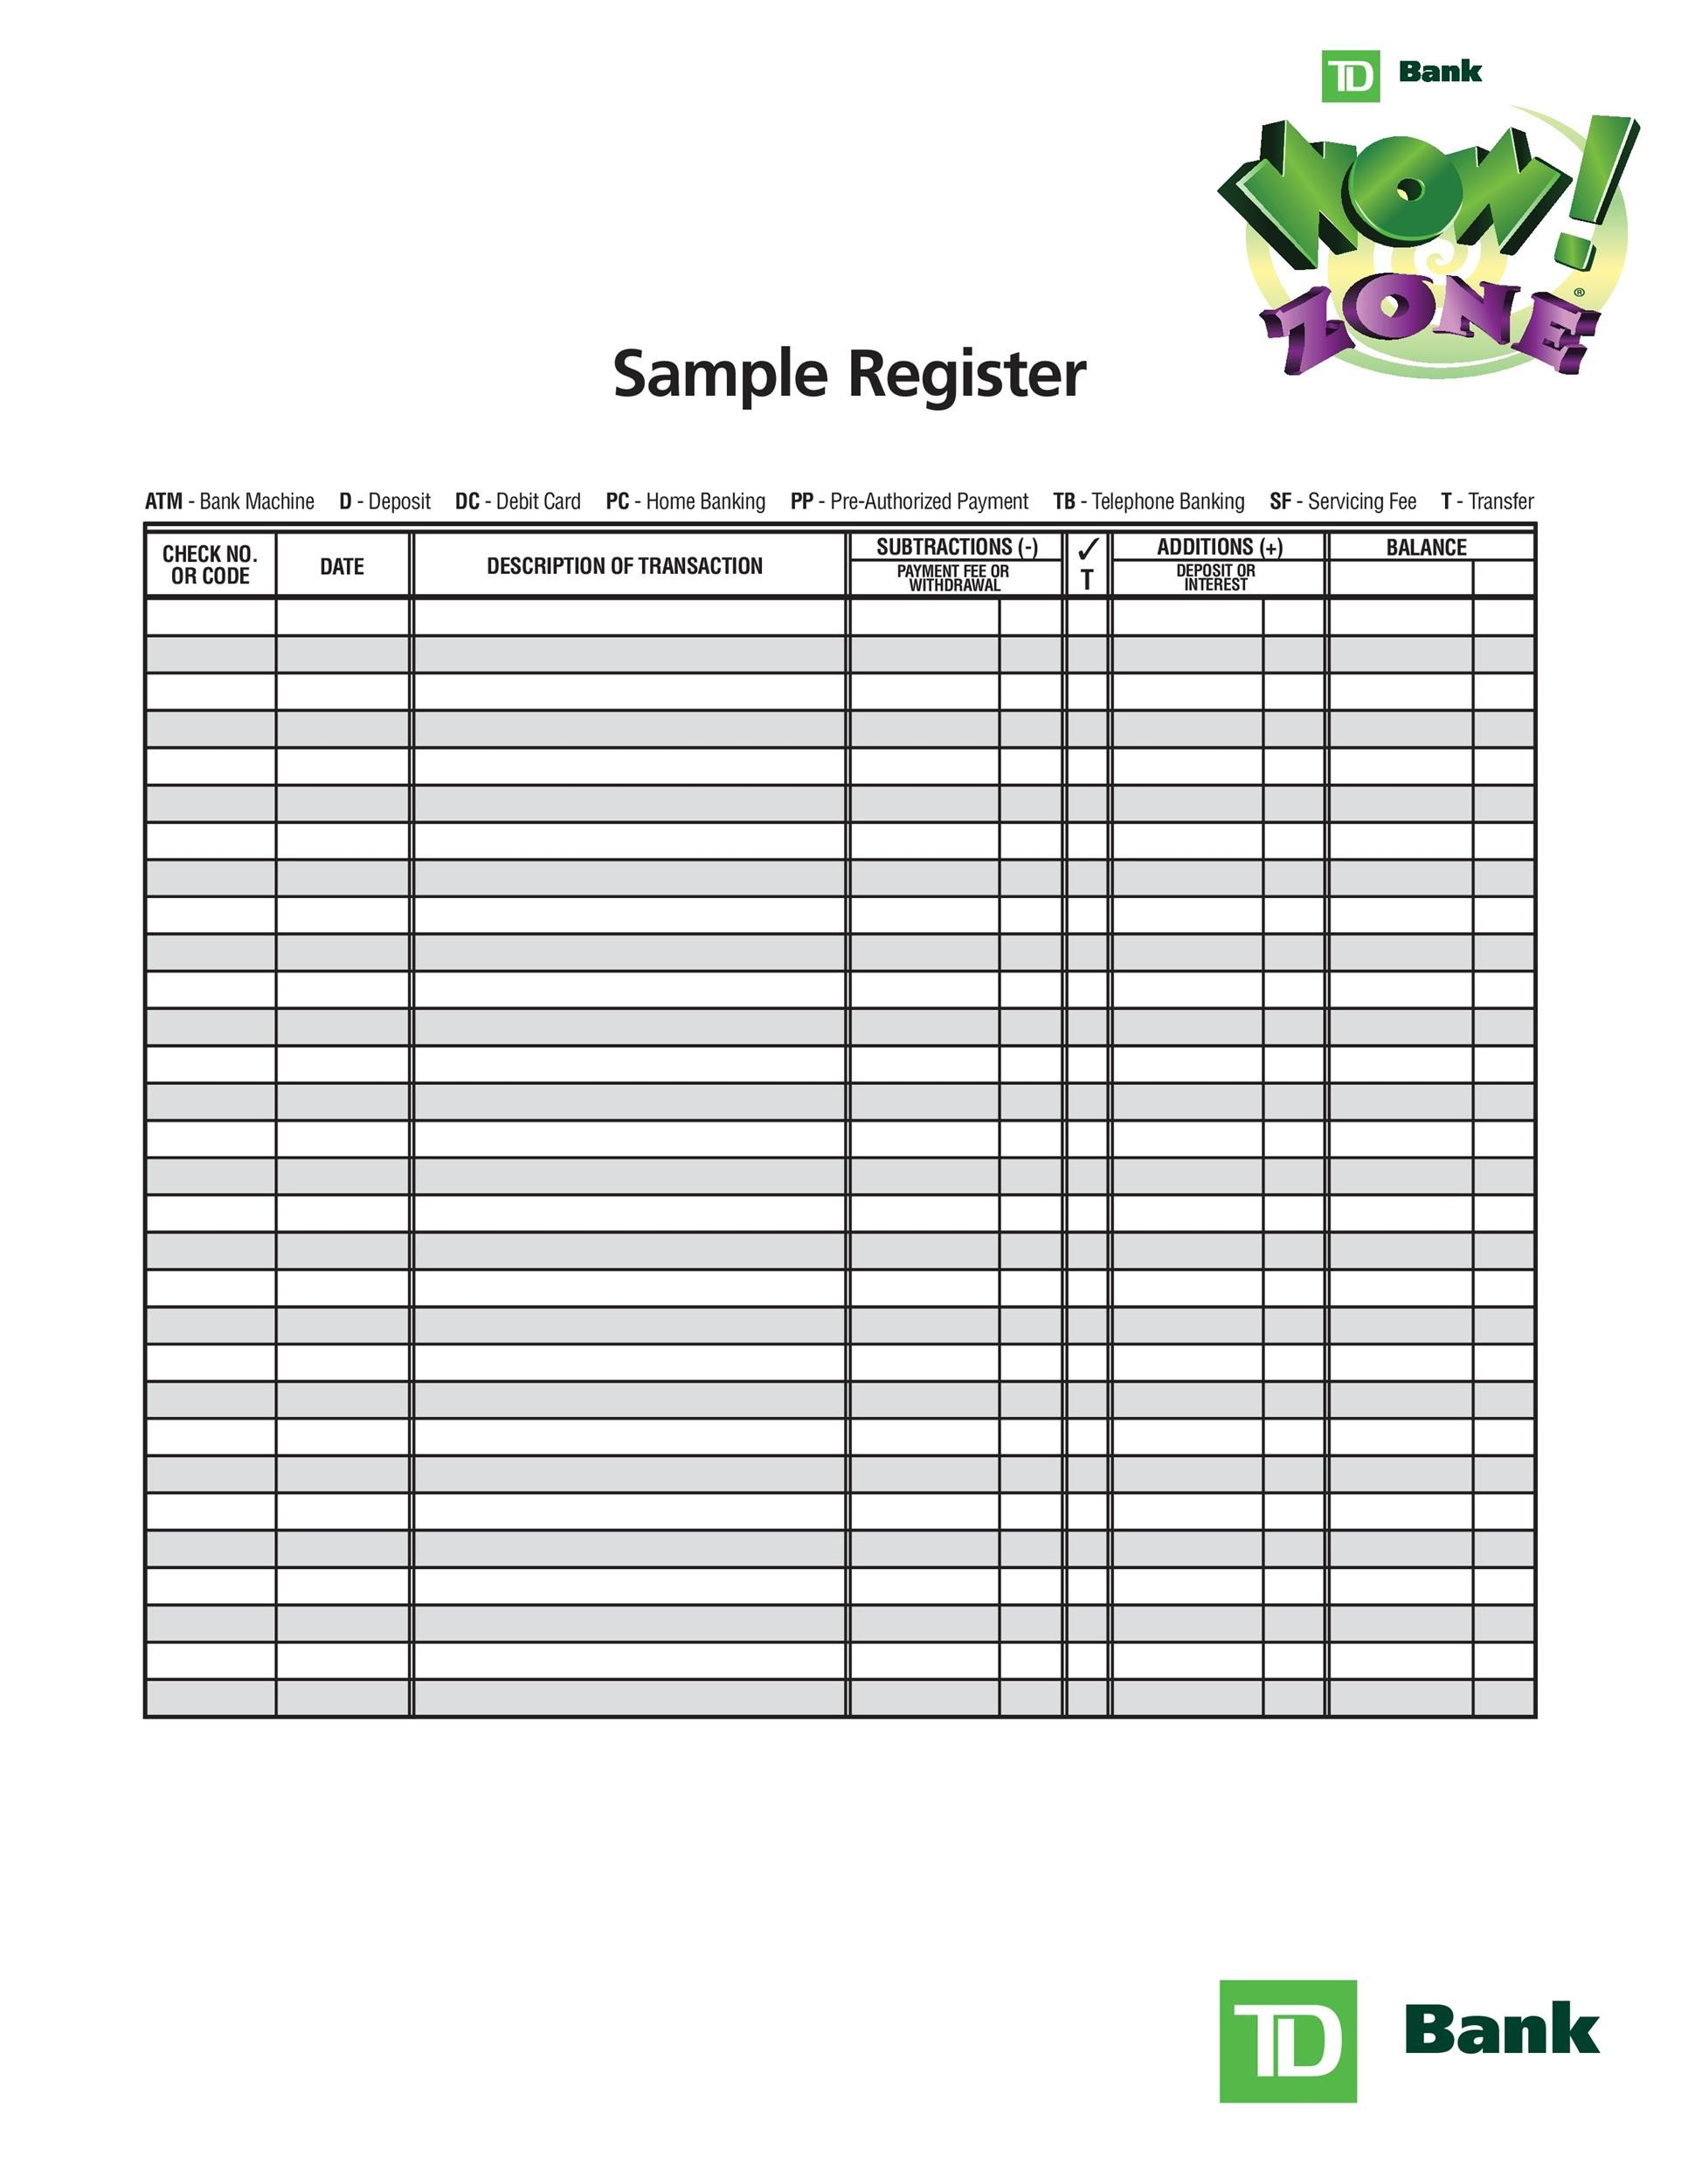 photograph about Printable Check Register Front and Back named 37 Checkbook Sign-up Templates [100% Absolutely free, Printable] ᐅ